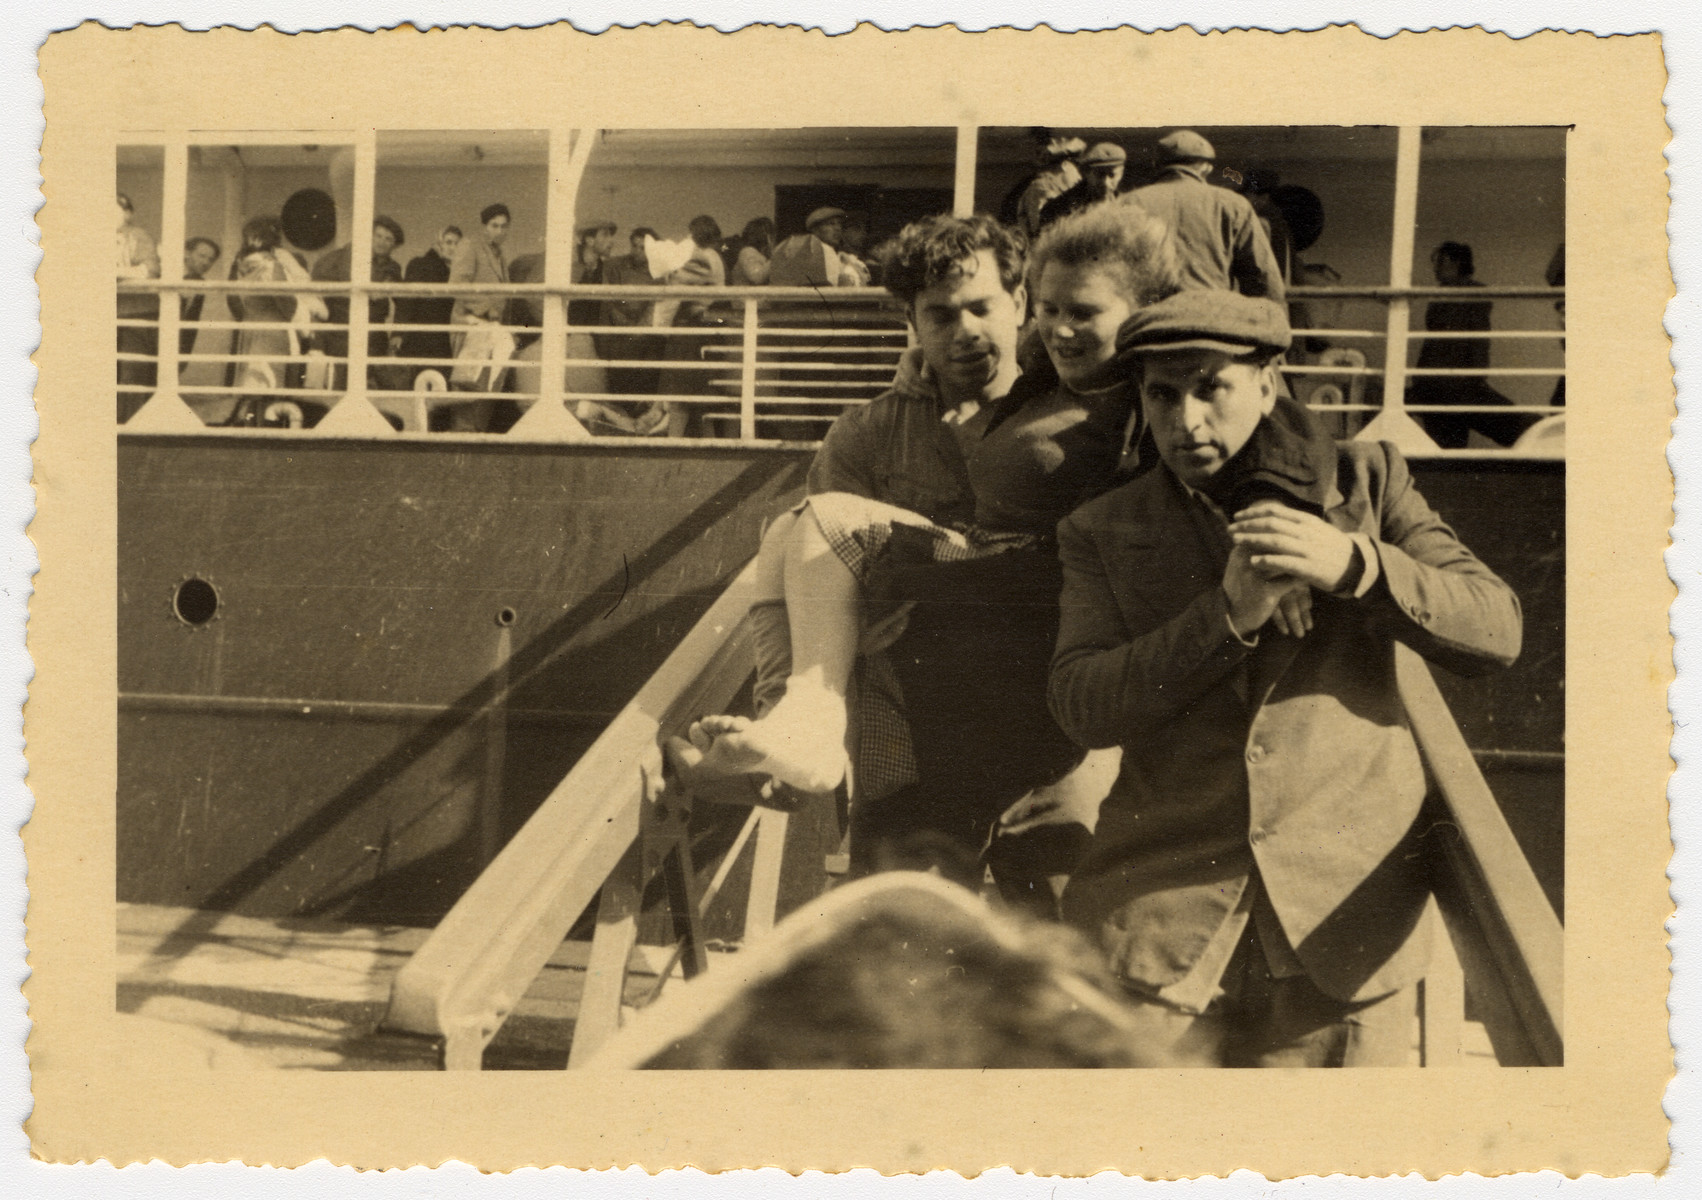 "A man carries a woman down the gangway as new immigrants arrive in the port of Haifa.  The donors caption reads ""Helping hands""."